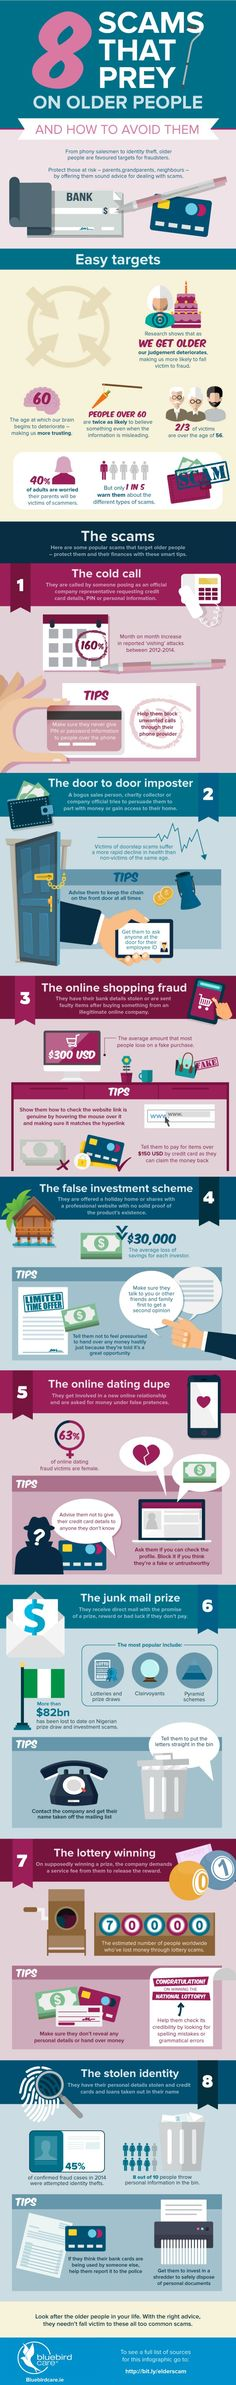 8 Scams that Prey on the Elderly #infographic #Scams #IdentityTheft